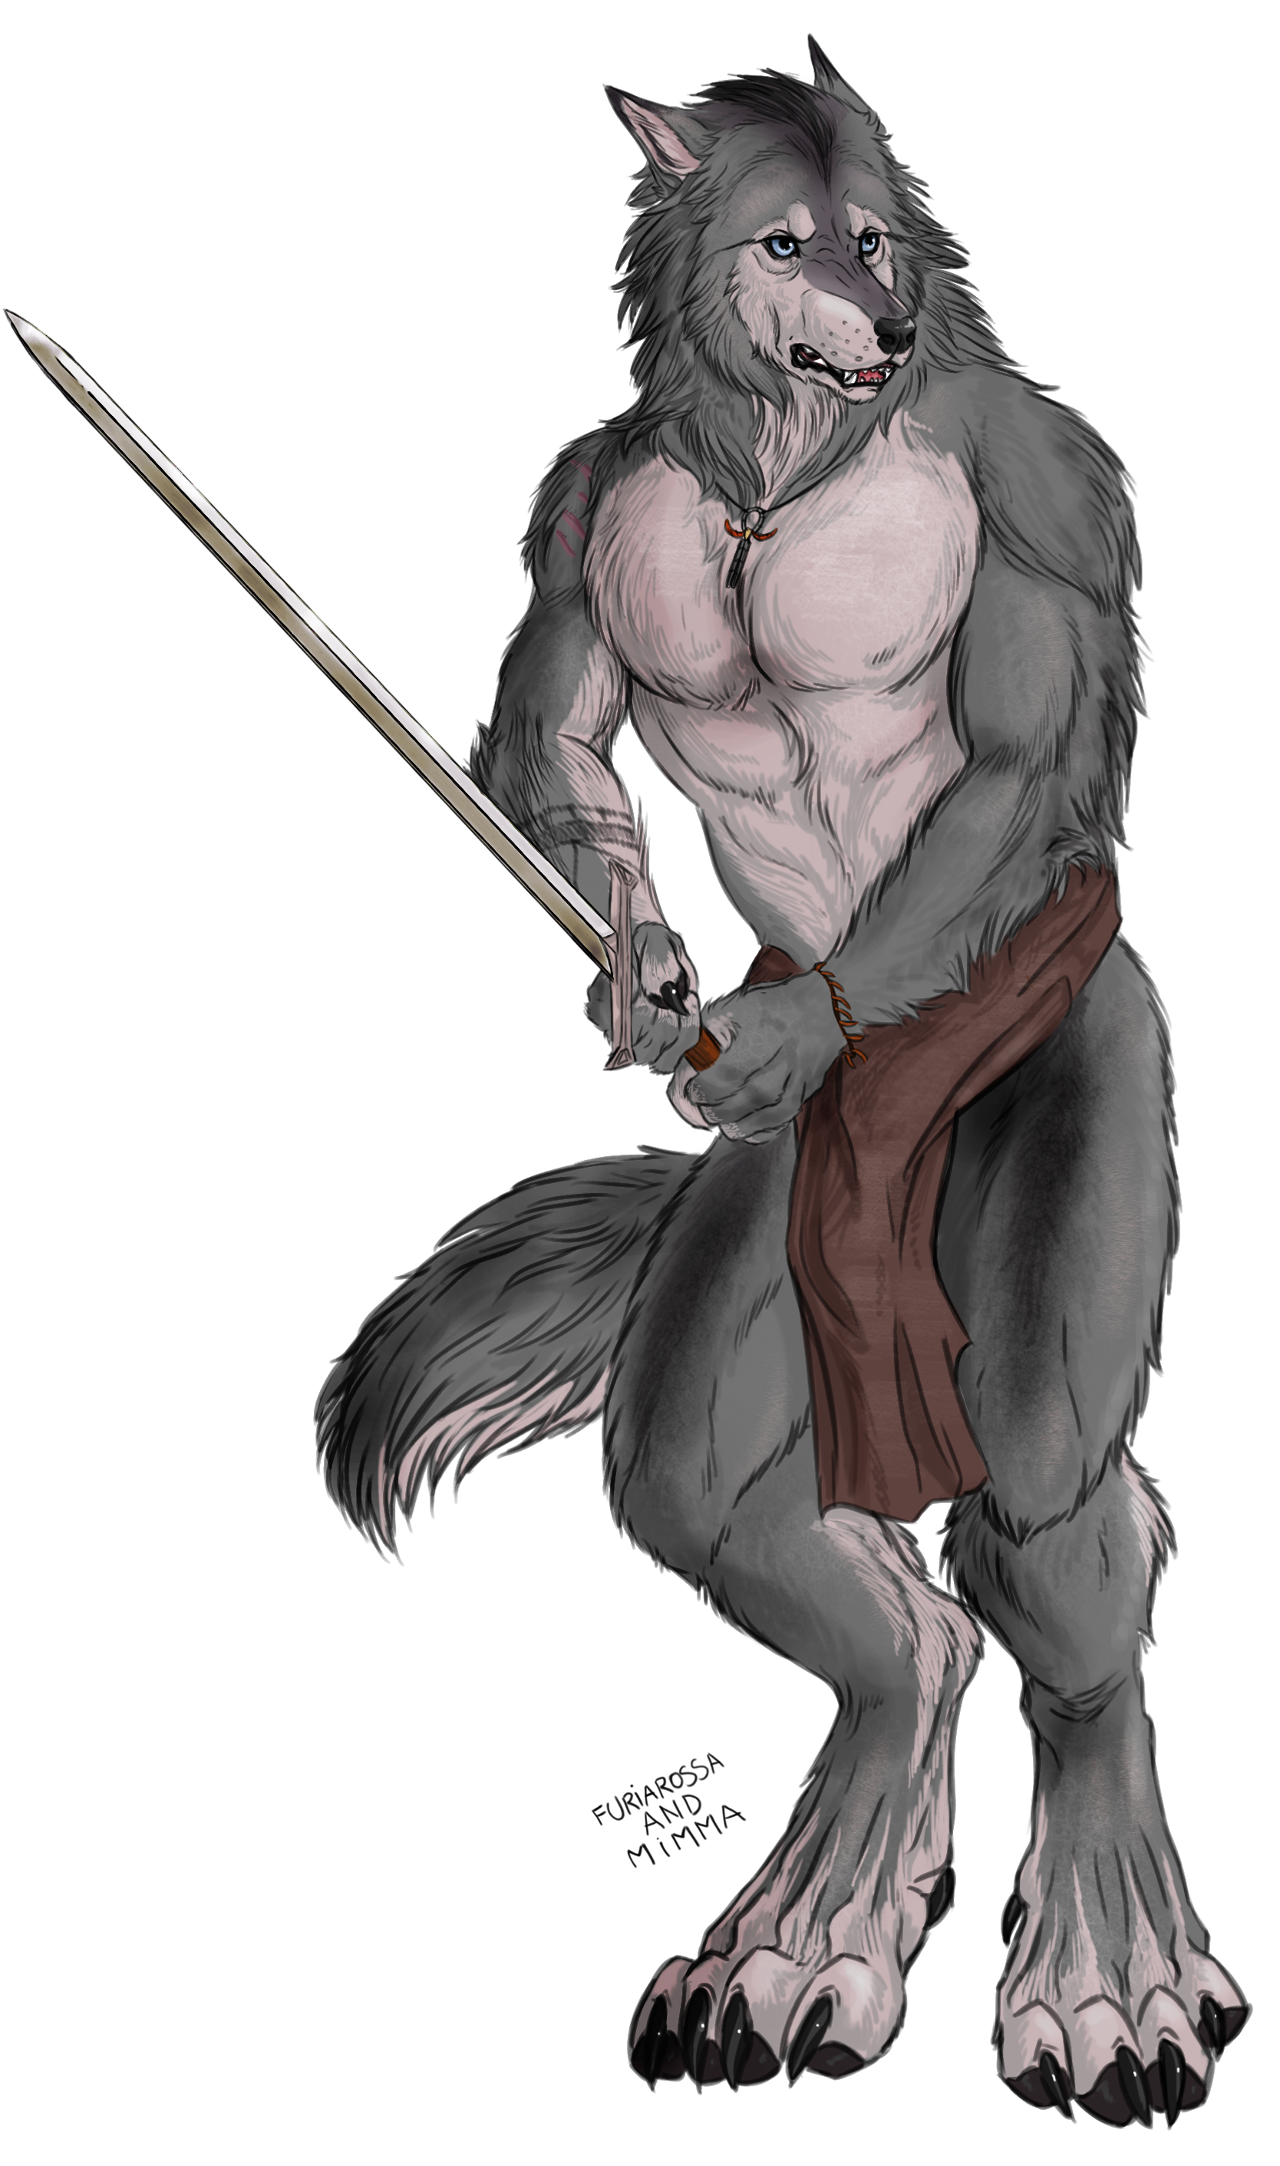 Executioner drawing roman. Commission transparent werewolf with